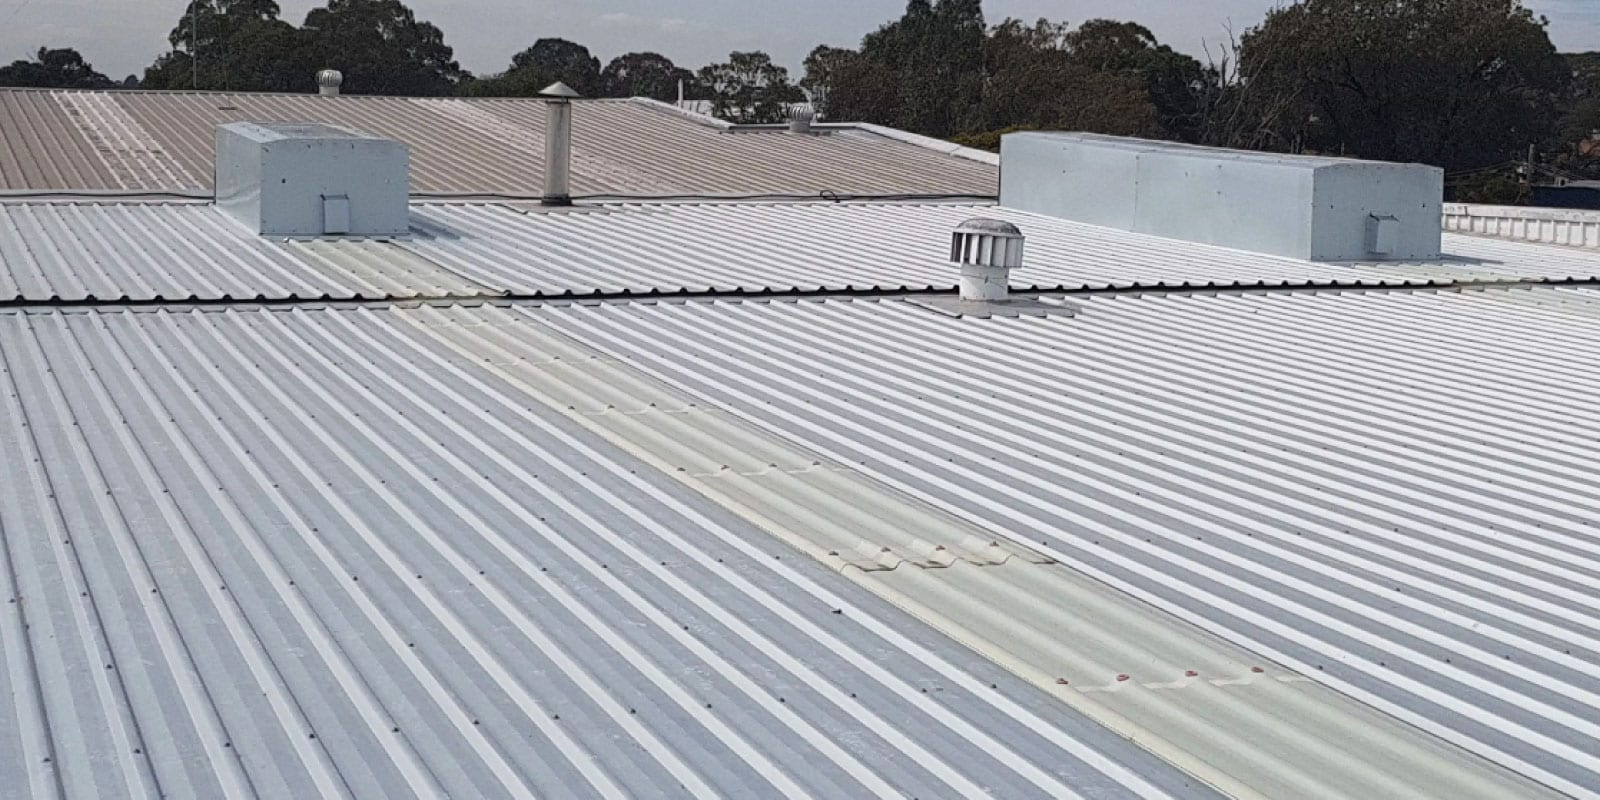 translucent commercial roofing material sydney